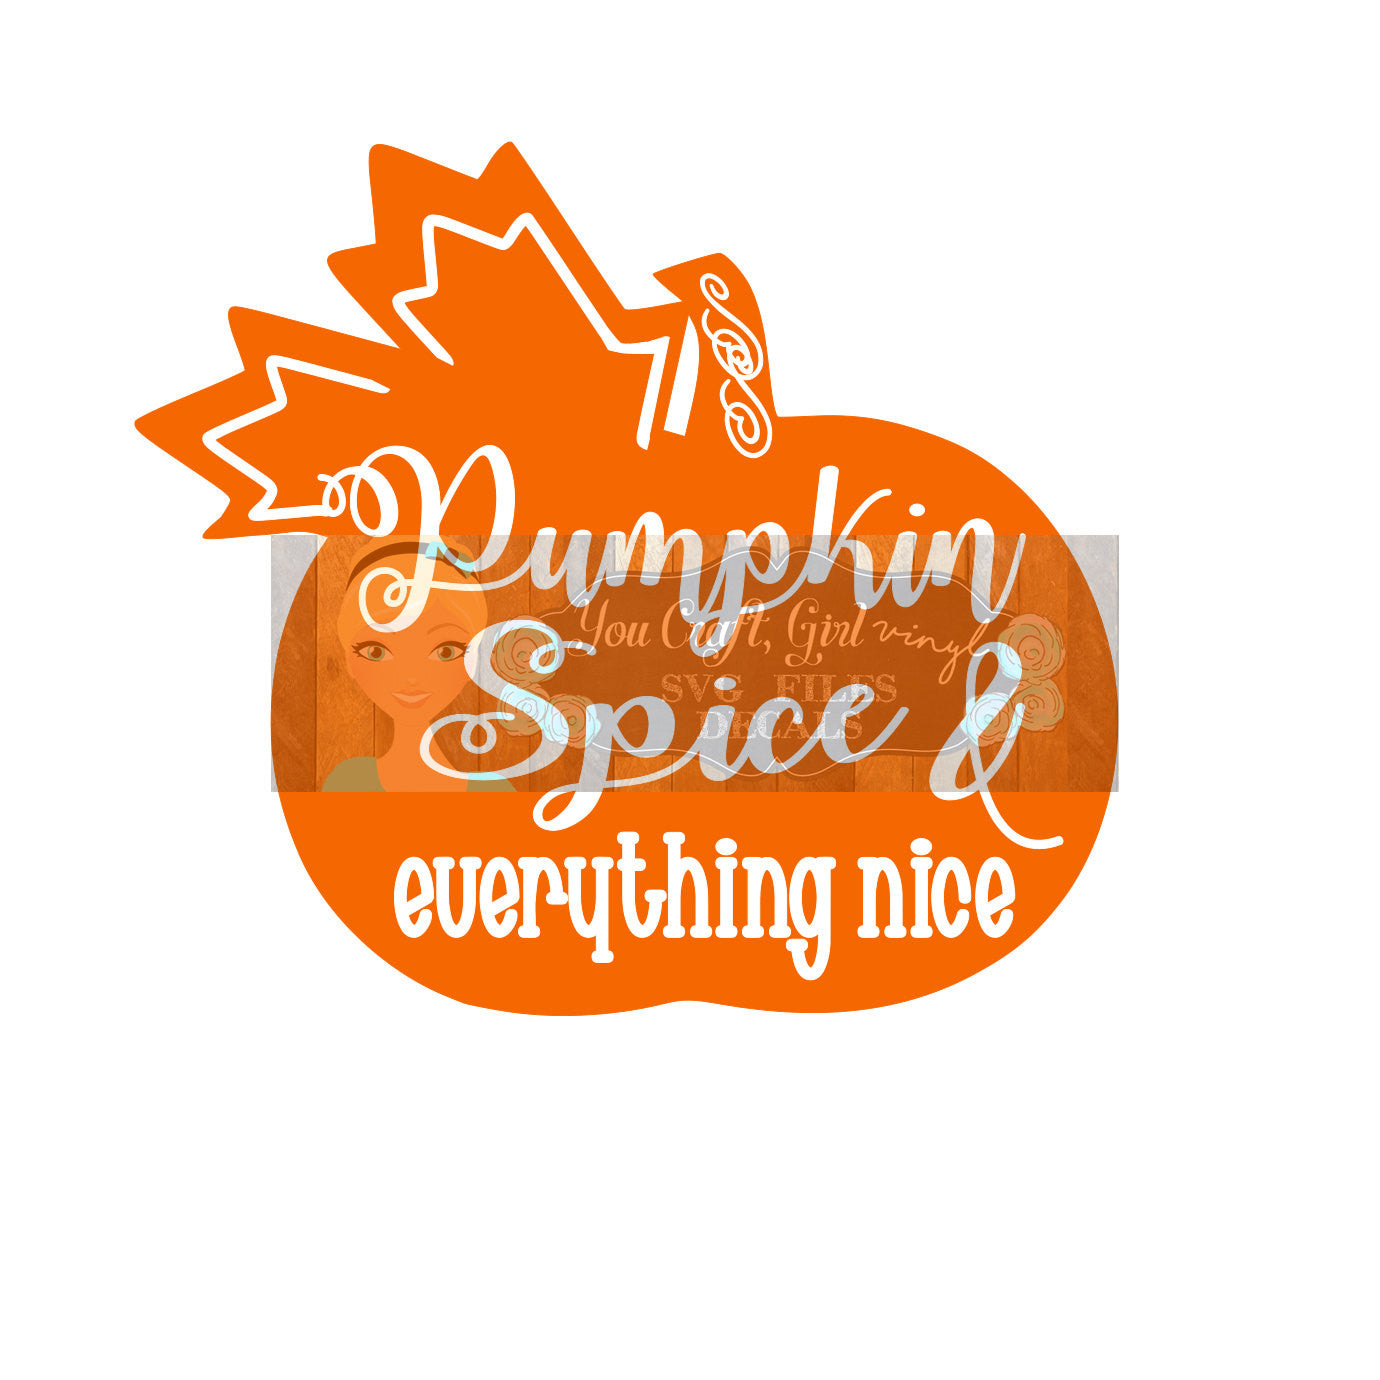 Pumpkin Spice and Everything Nice Svg Dxf   Commercial SVG  Thanksgiving Decor   Pumpkin Decor   Fall SVG   Autumn SVG   Pumpkin Spice decal